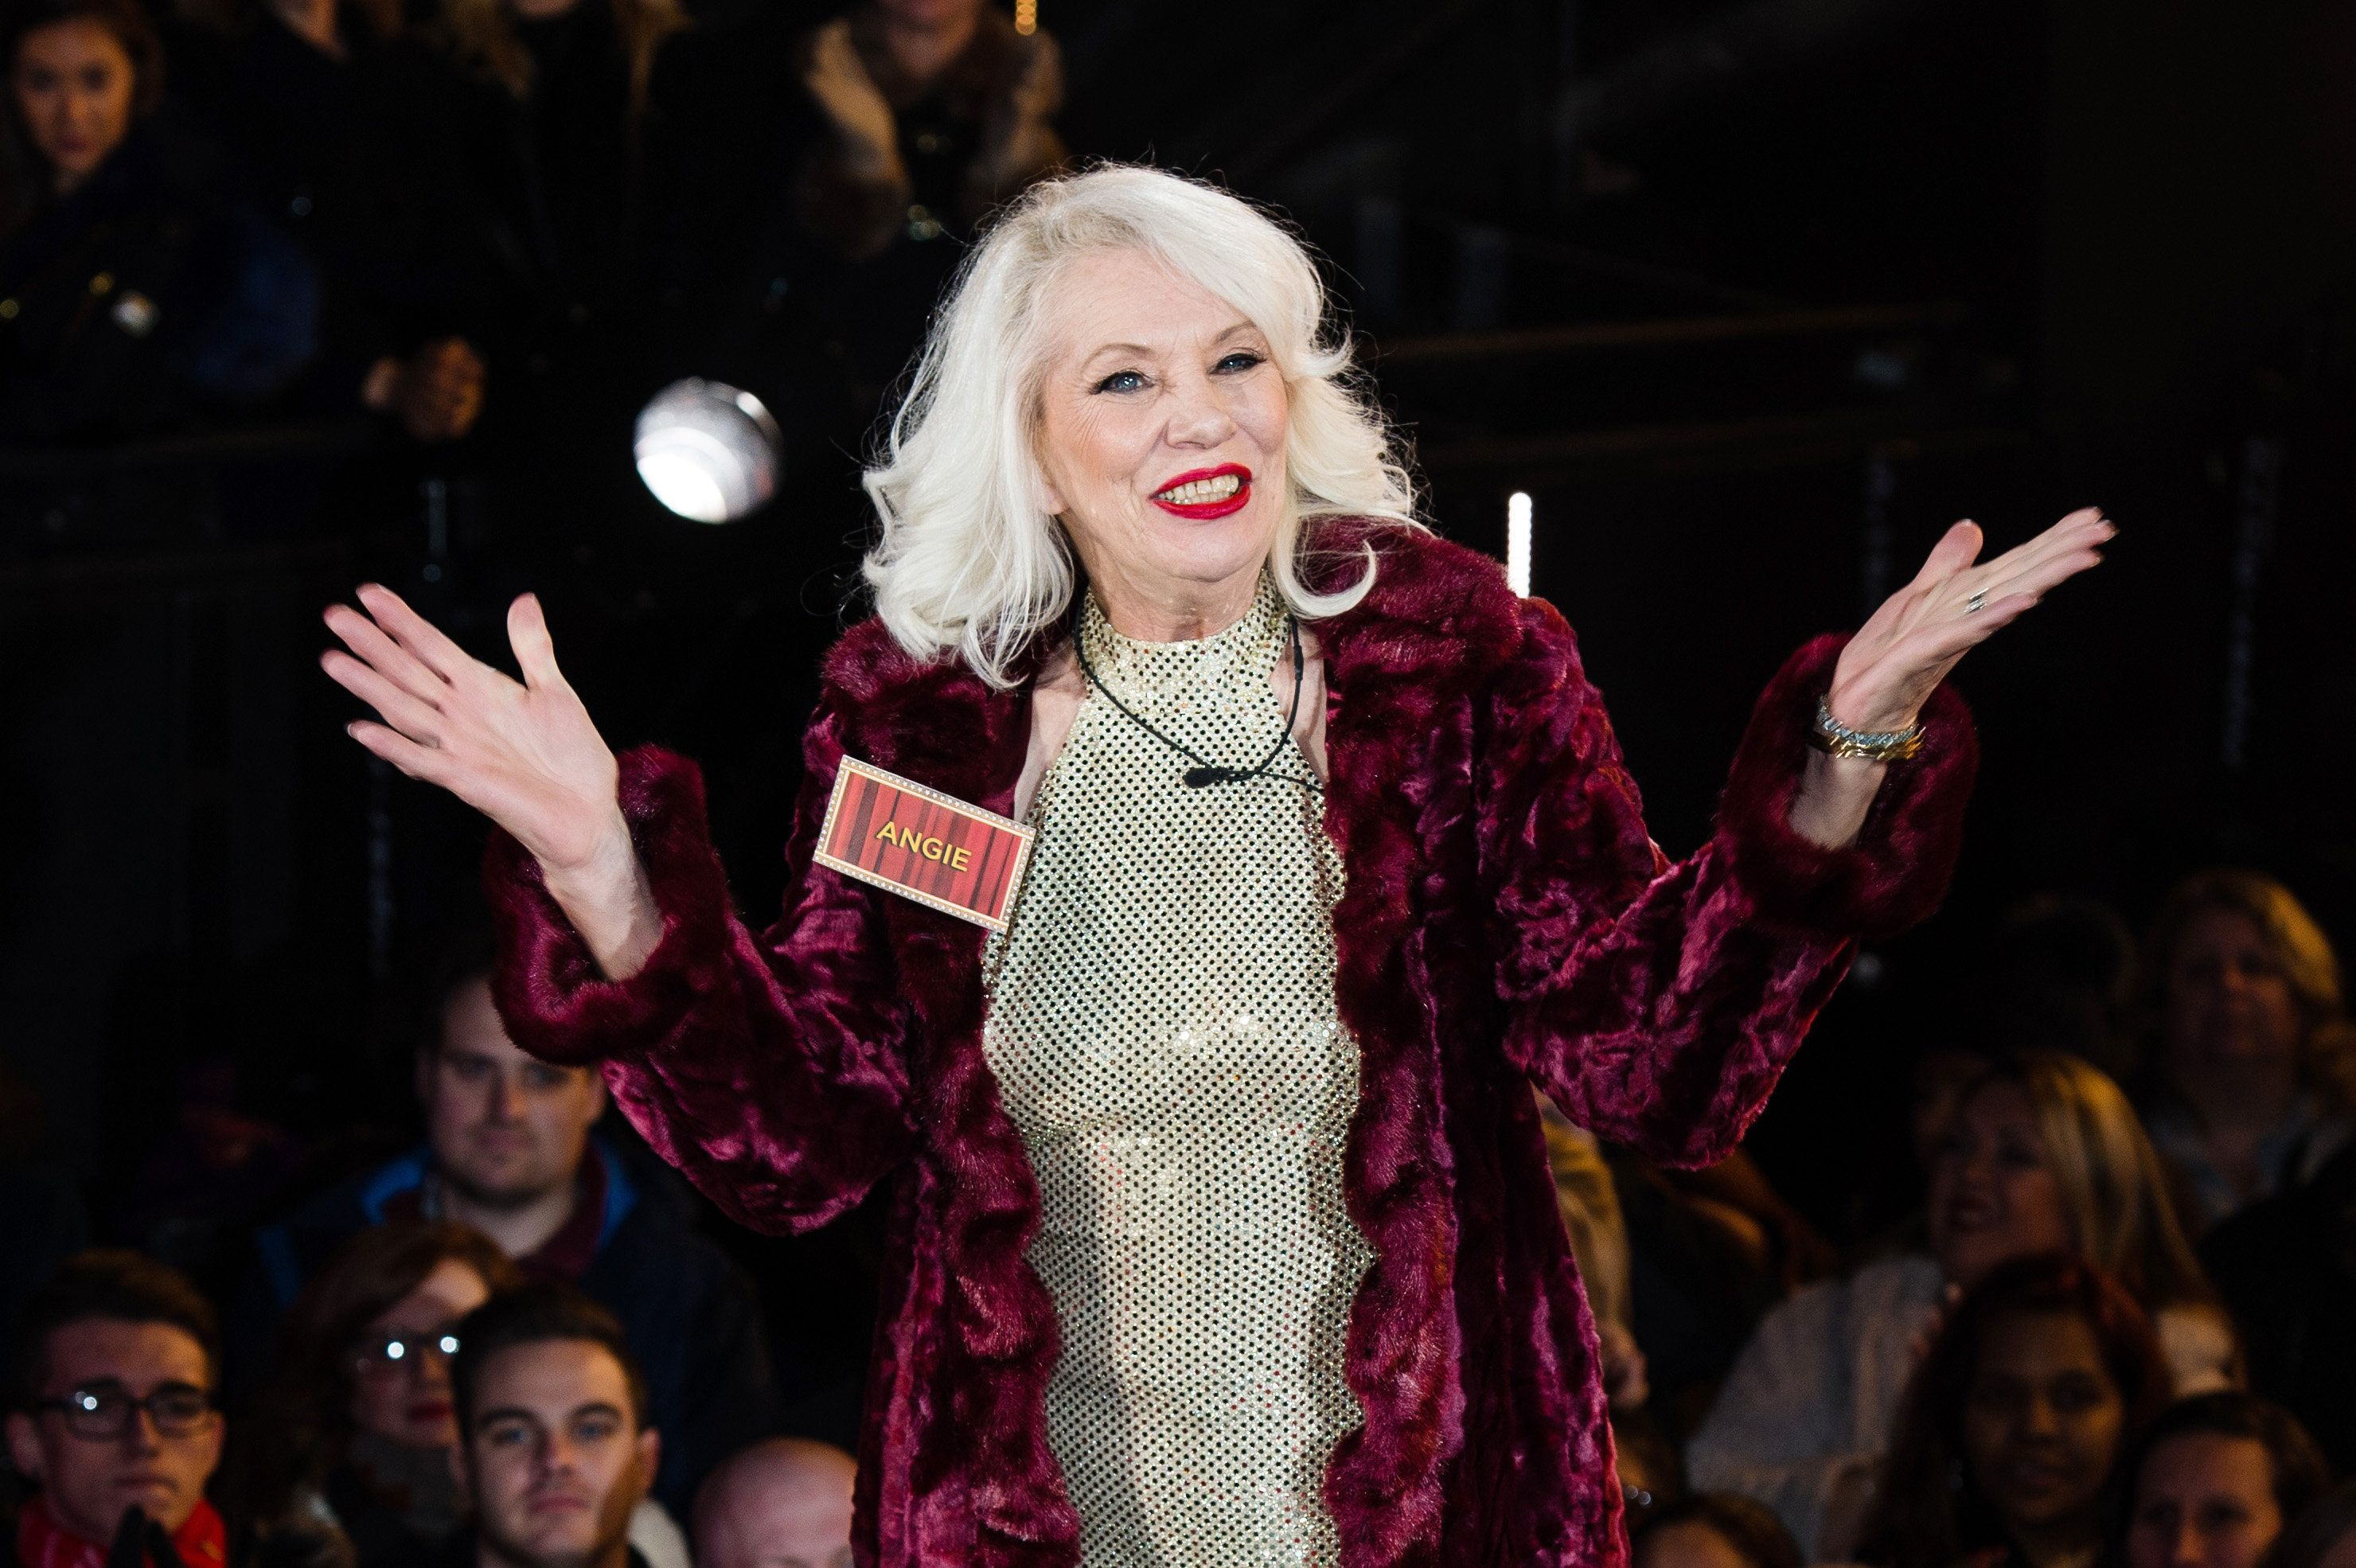 BOREHAMWOOD, ENGLAND - JANUARY 05:  Angie Bowie enters the Celebrity Big Brother House at Elstree Studios on January 5, 2016 in Borehamwood, England.  (Photo by Jeff Spicer/Getty Images)